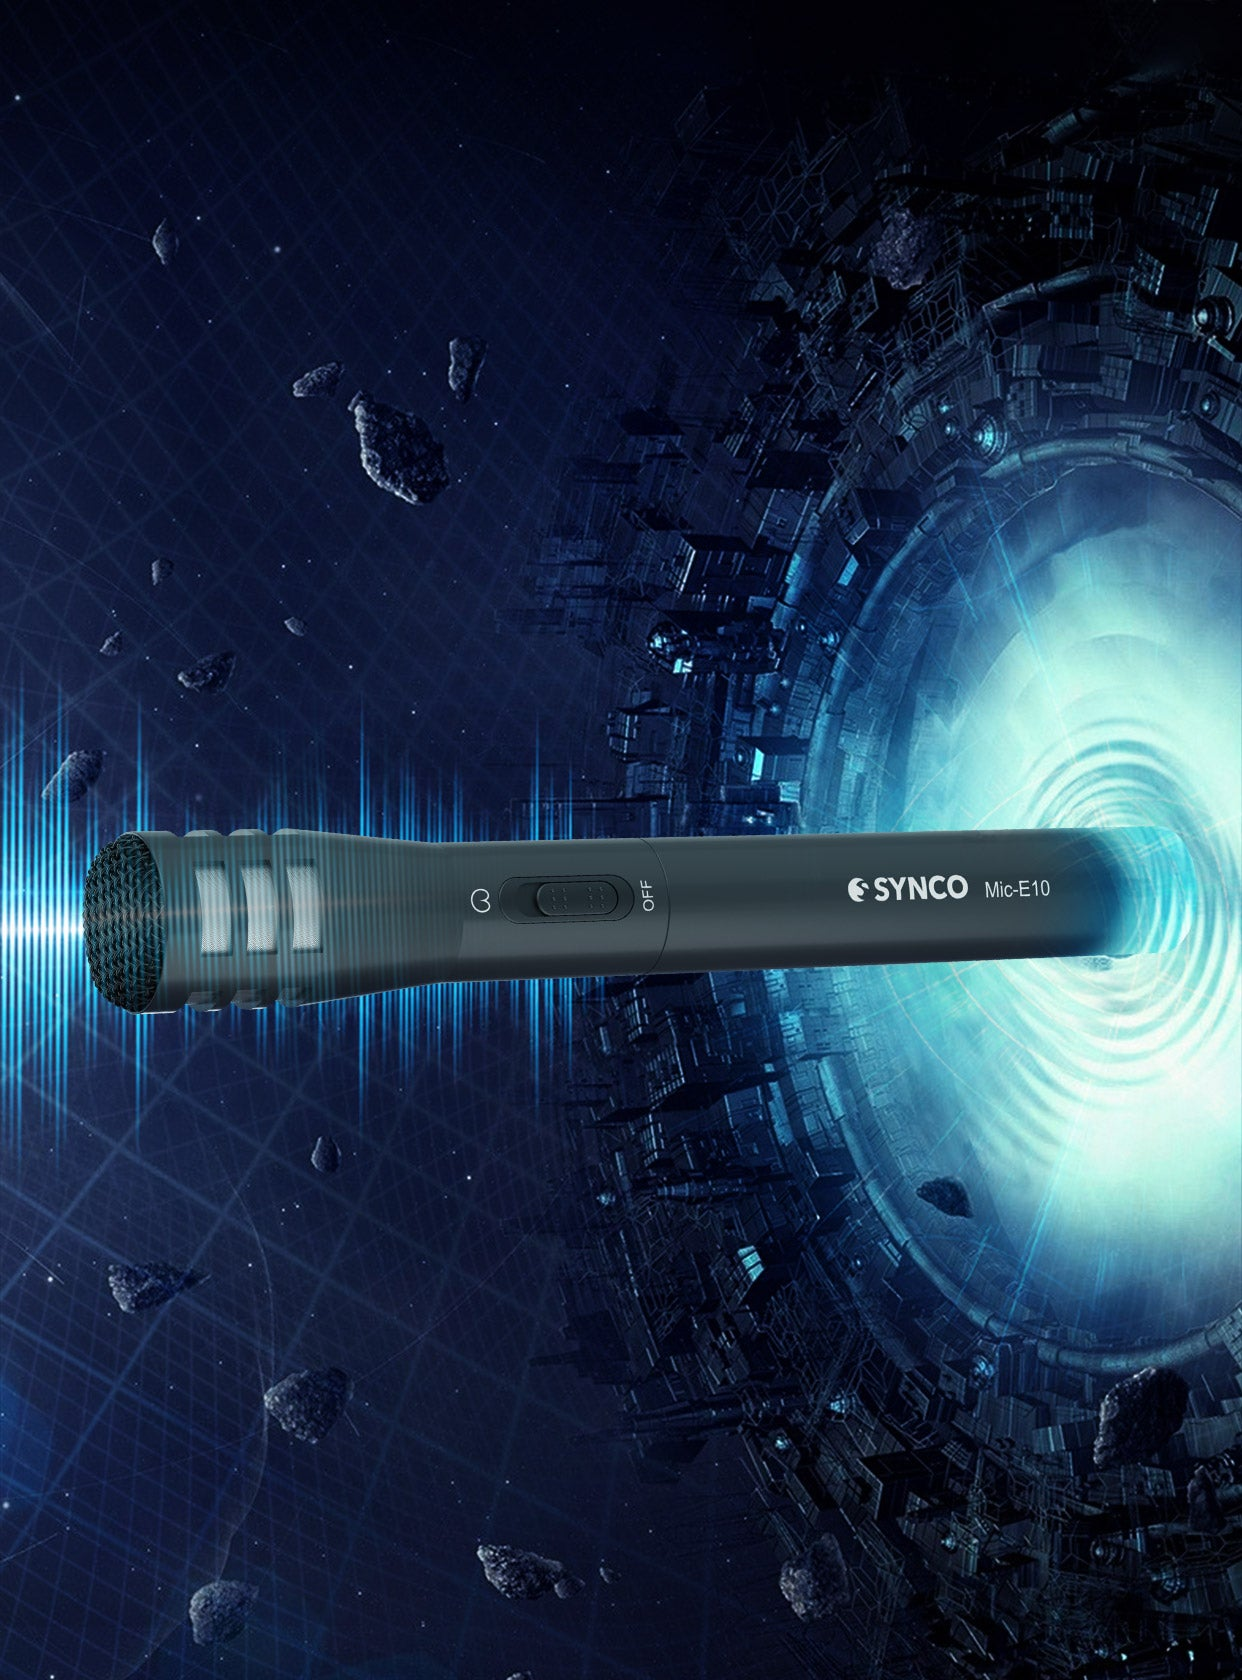 SYNCO Mic-E10 Broad, Balanced Frequency Response